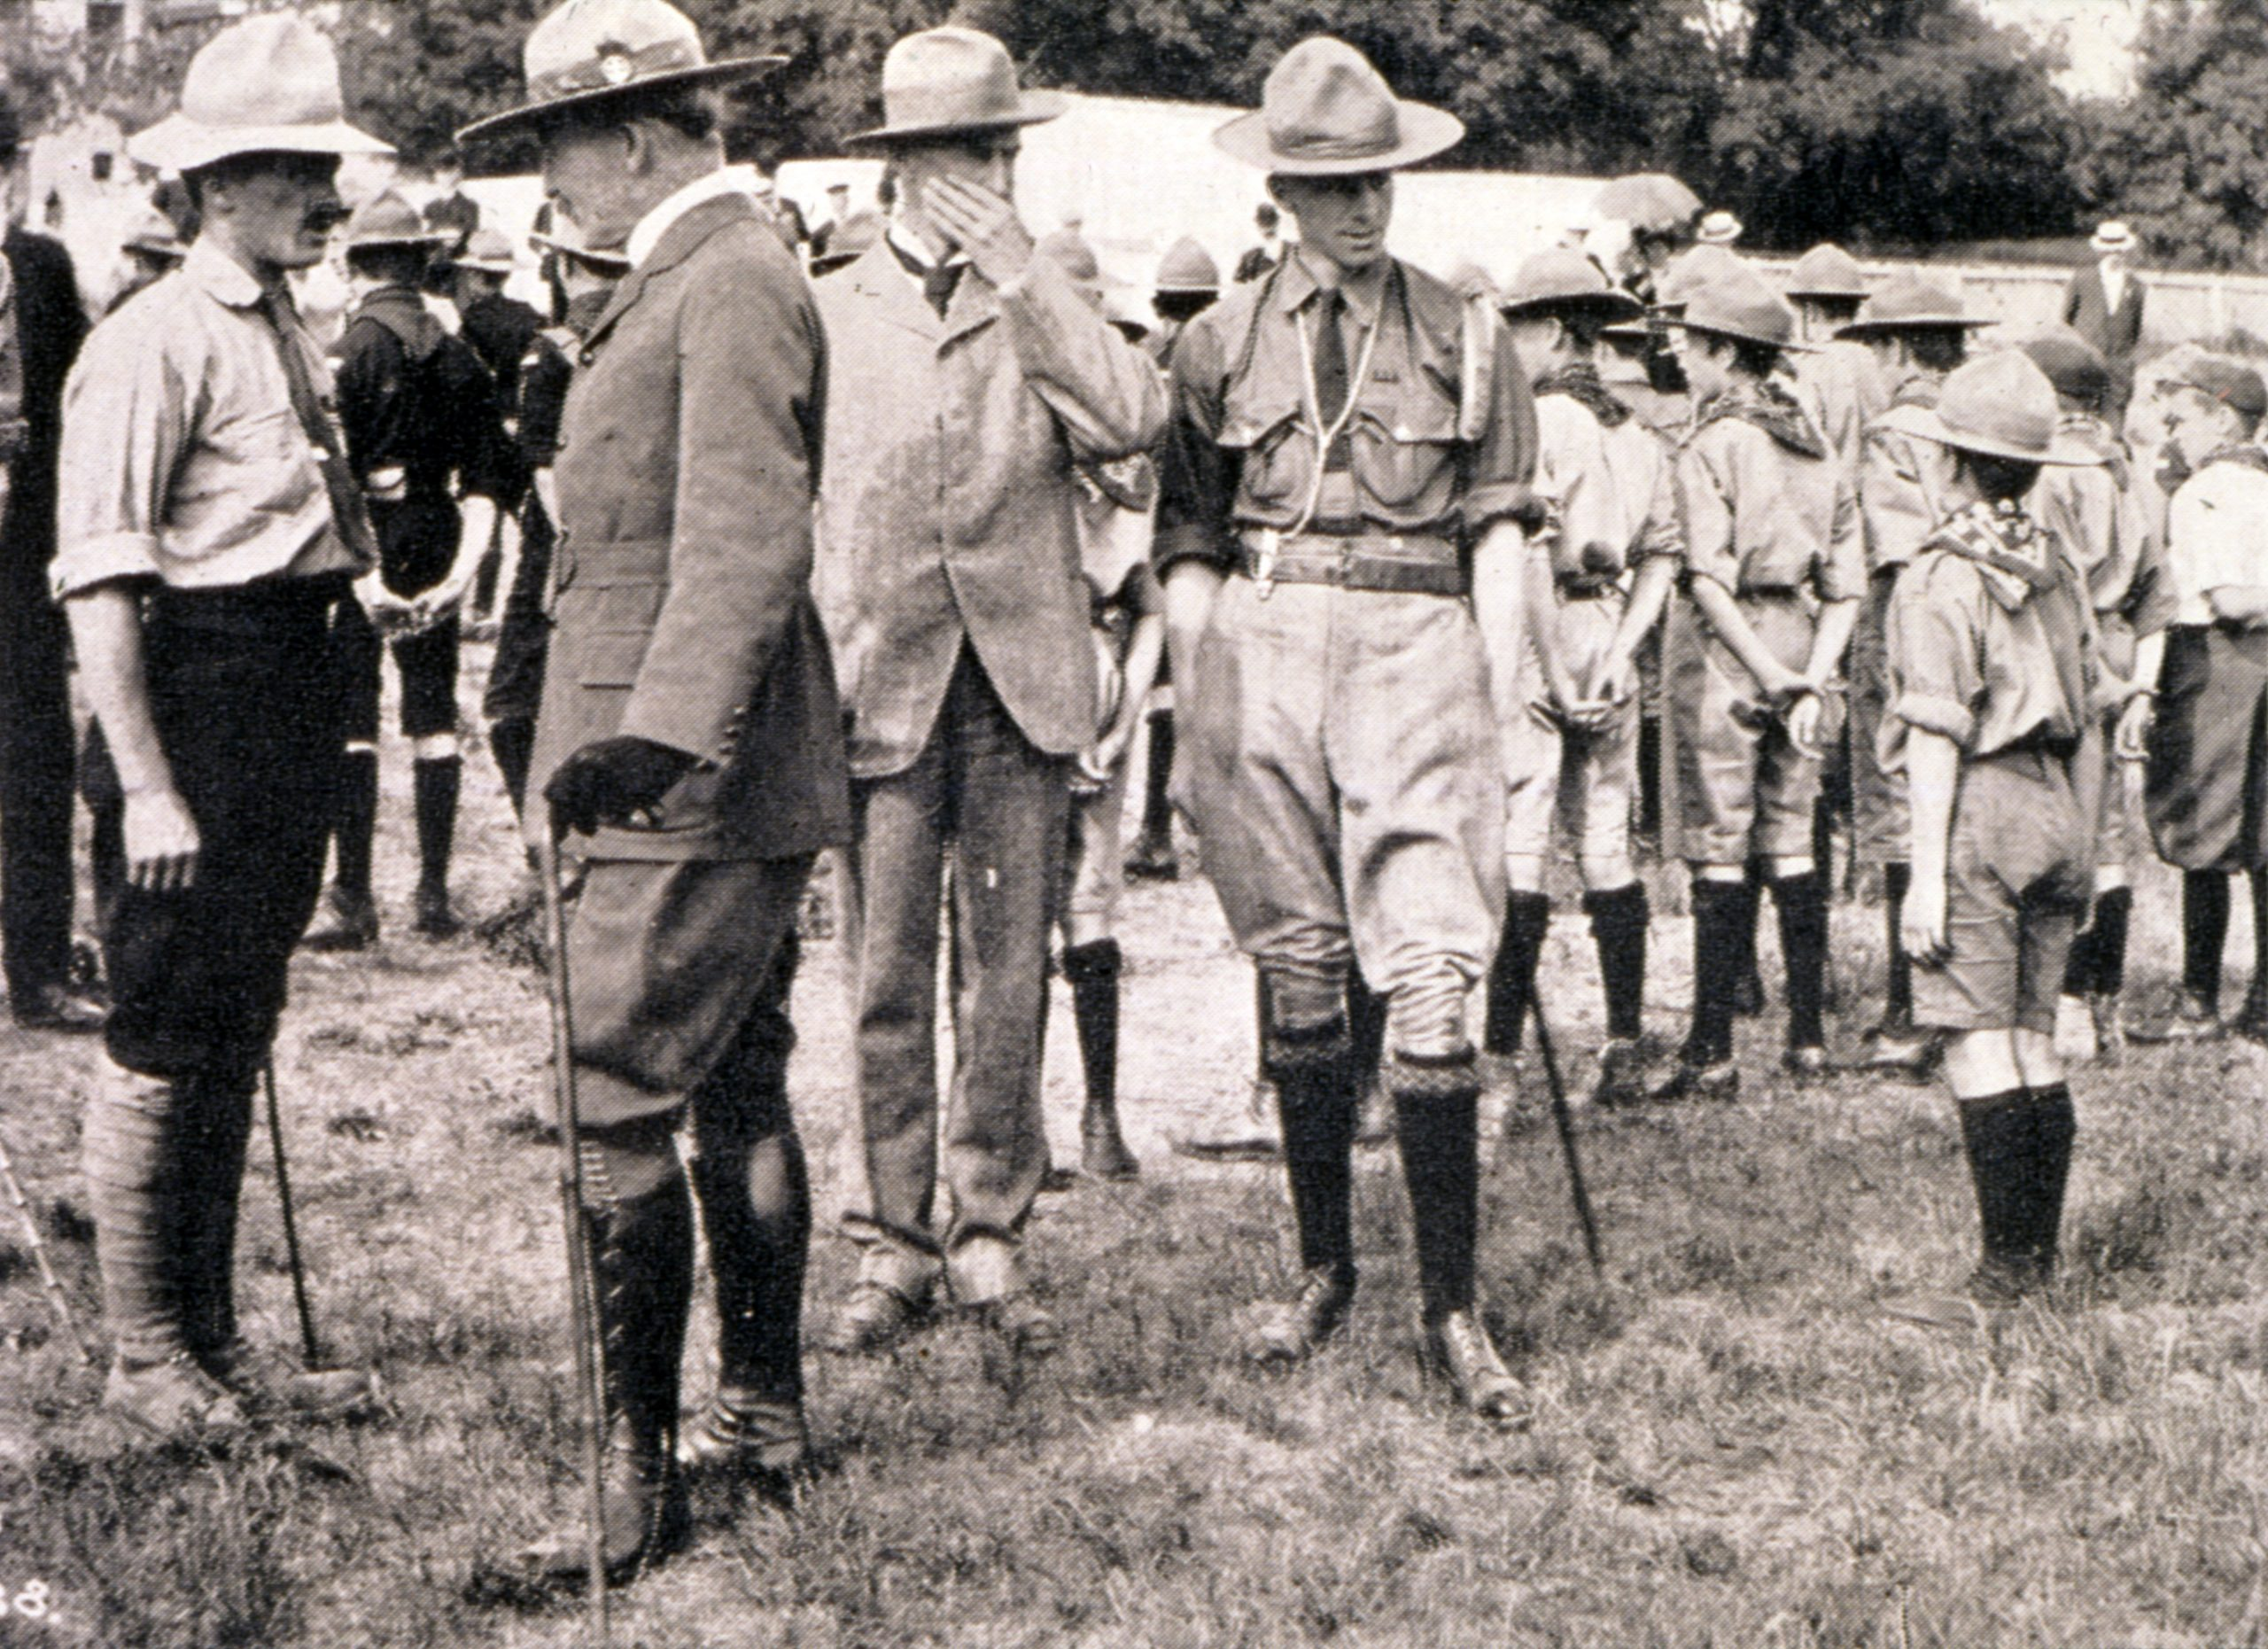 Lord Baden Powell inspects Boy Scouts